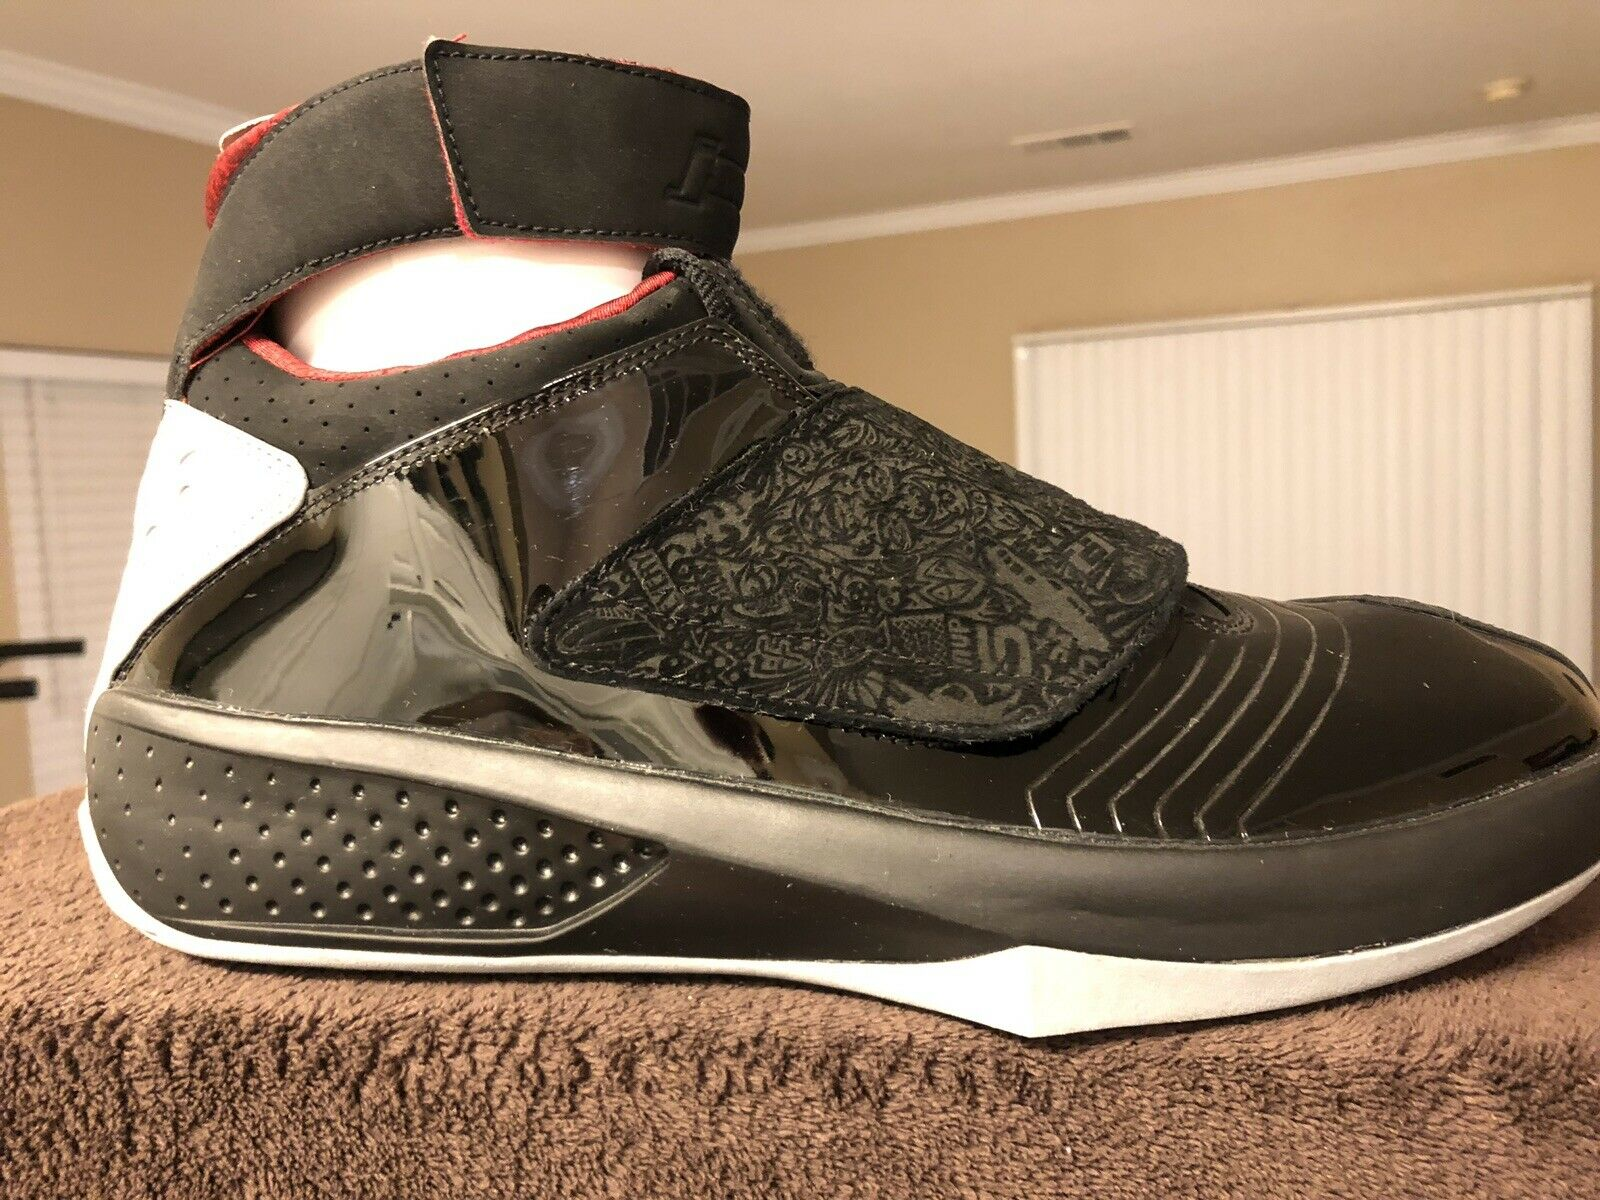 new products d5e39 76d66 Nike Nike Nike DS Air Jordan 20 Stealth Black Size 12 (2005) f07166